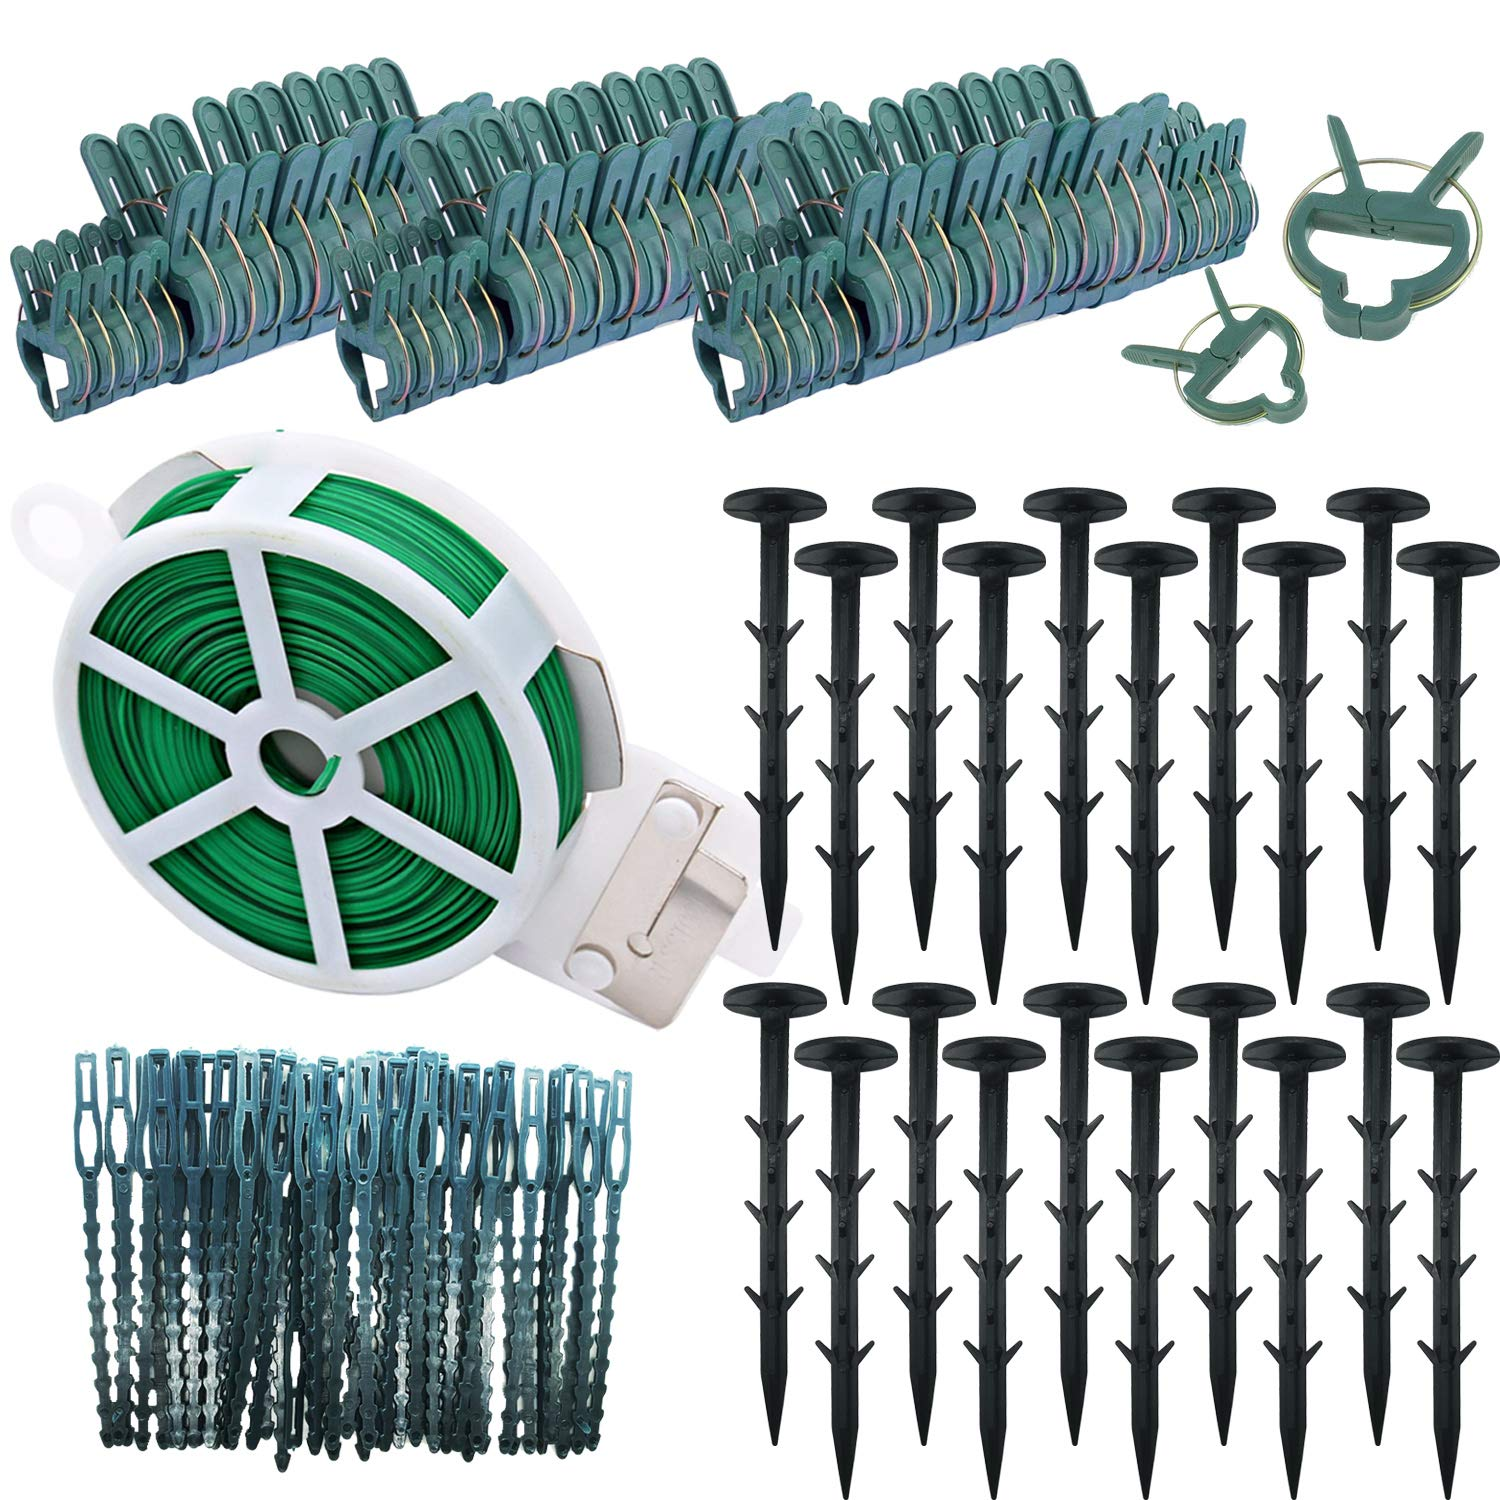 Seasonsky Floral Arrangement Kit 82 PCS Plant Supports Plant Growing Supports Set Included Plant Clips, Plant Cable Ties, Garden Plant Twist Tie and Plastic Tacks for DIY Garden Climbing Plant